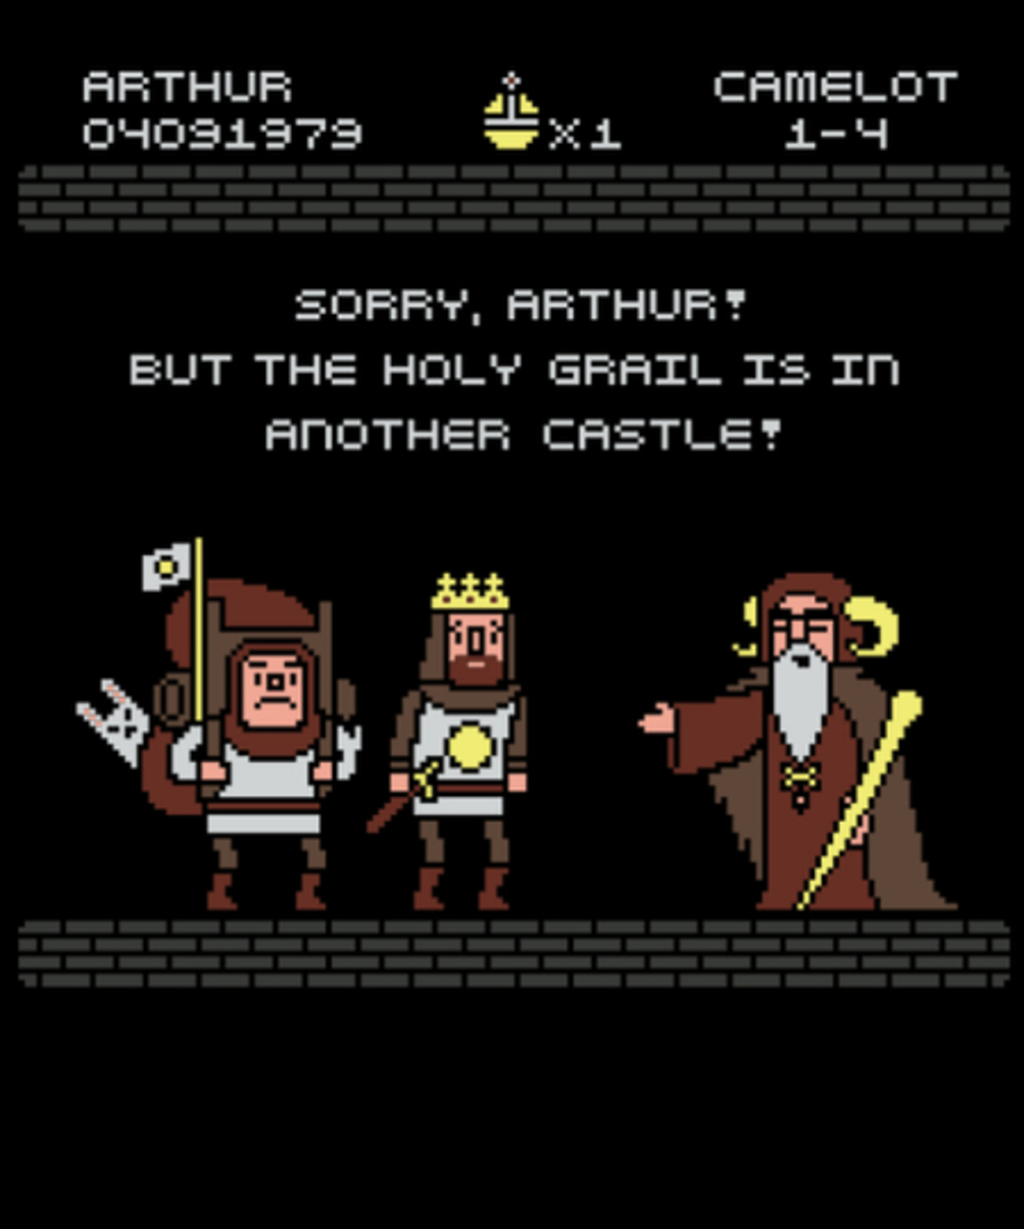 Qwertee: The Grail is in Another Castle